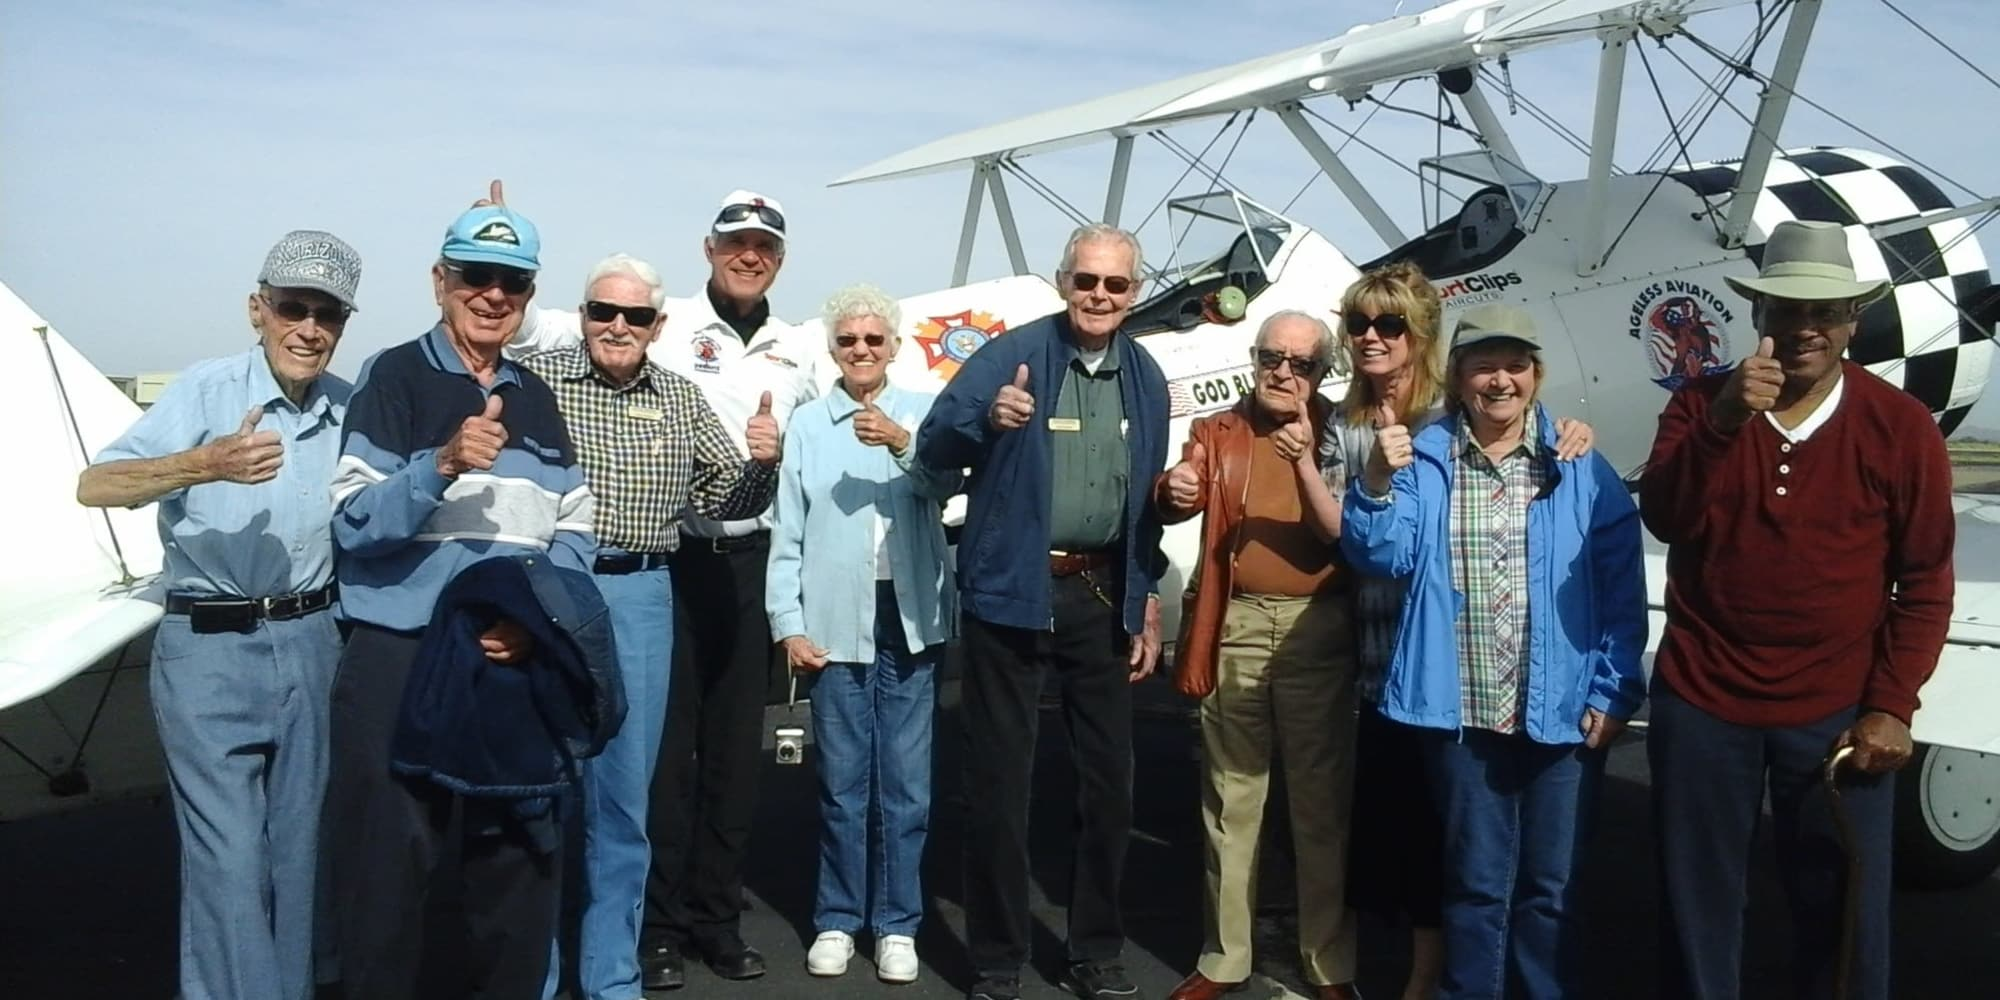 A group of residents from Desert Springs Gracious Retirement Living in Oro Valley, Arizona standing in front of a plane